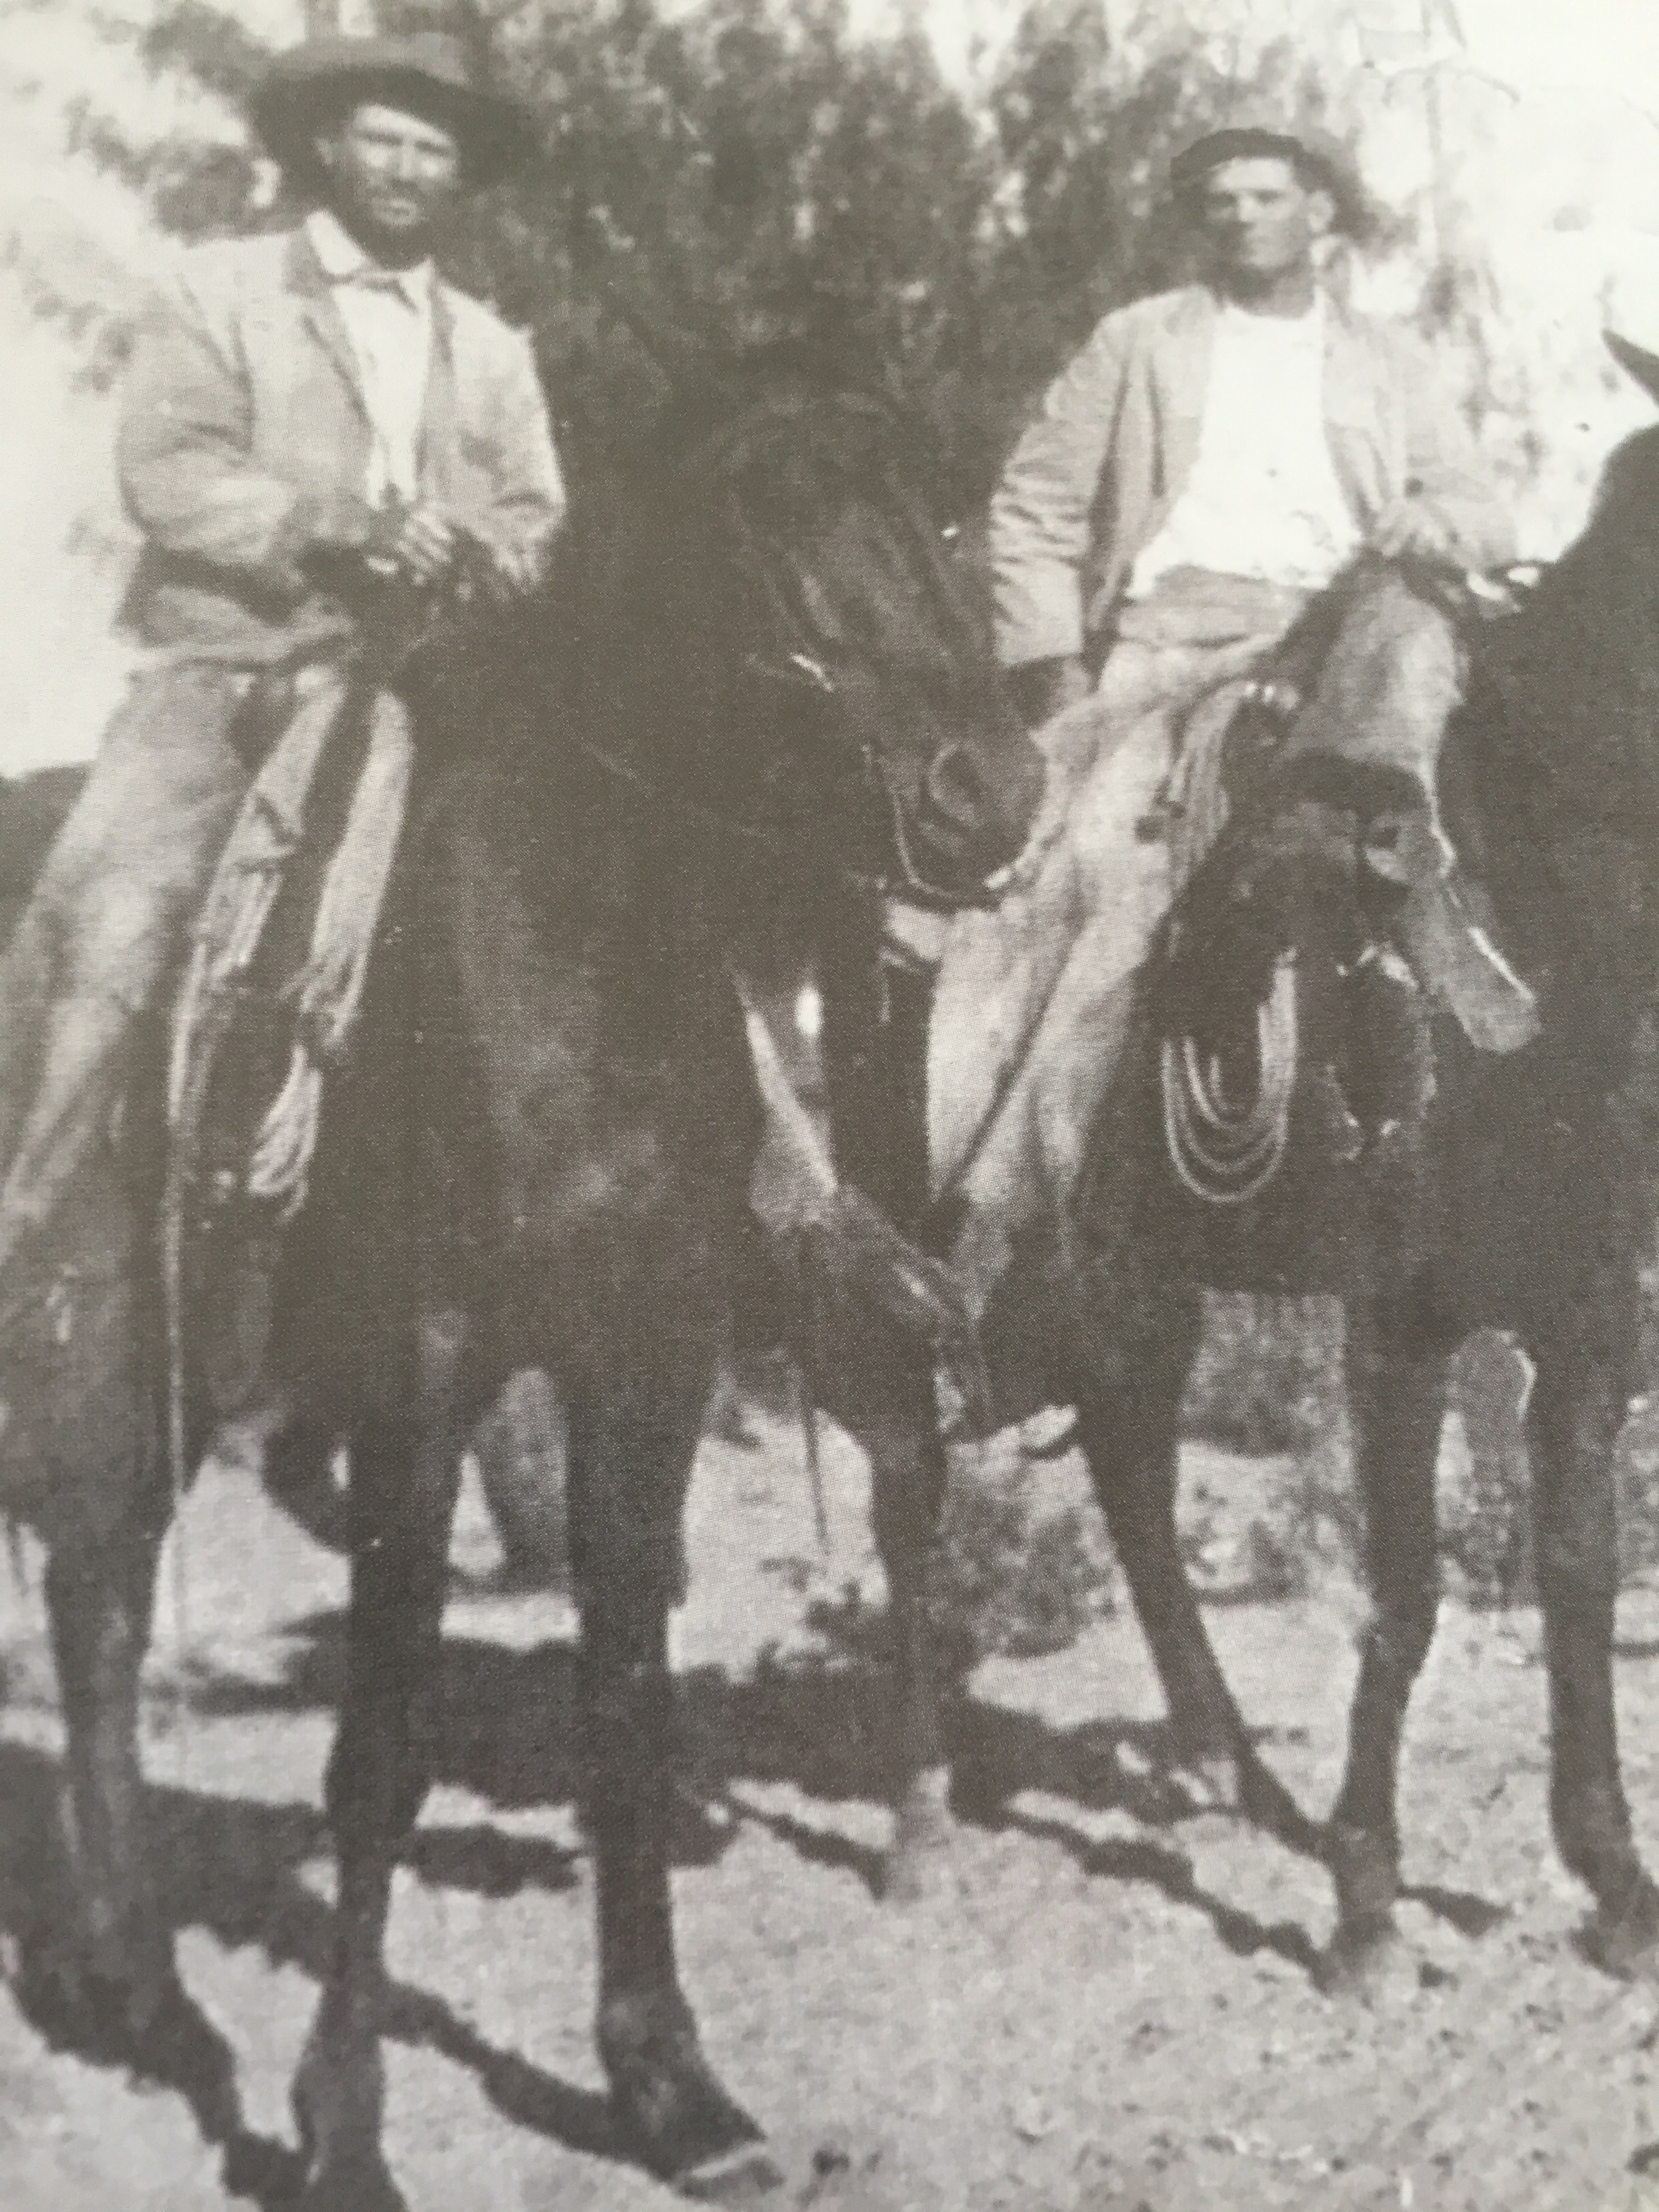 A.C. Jones, son of W.W. (Left) and Tom East after a raid on the East Ranch